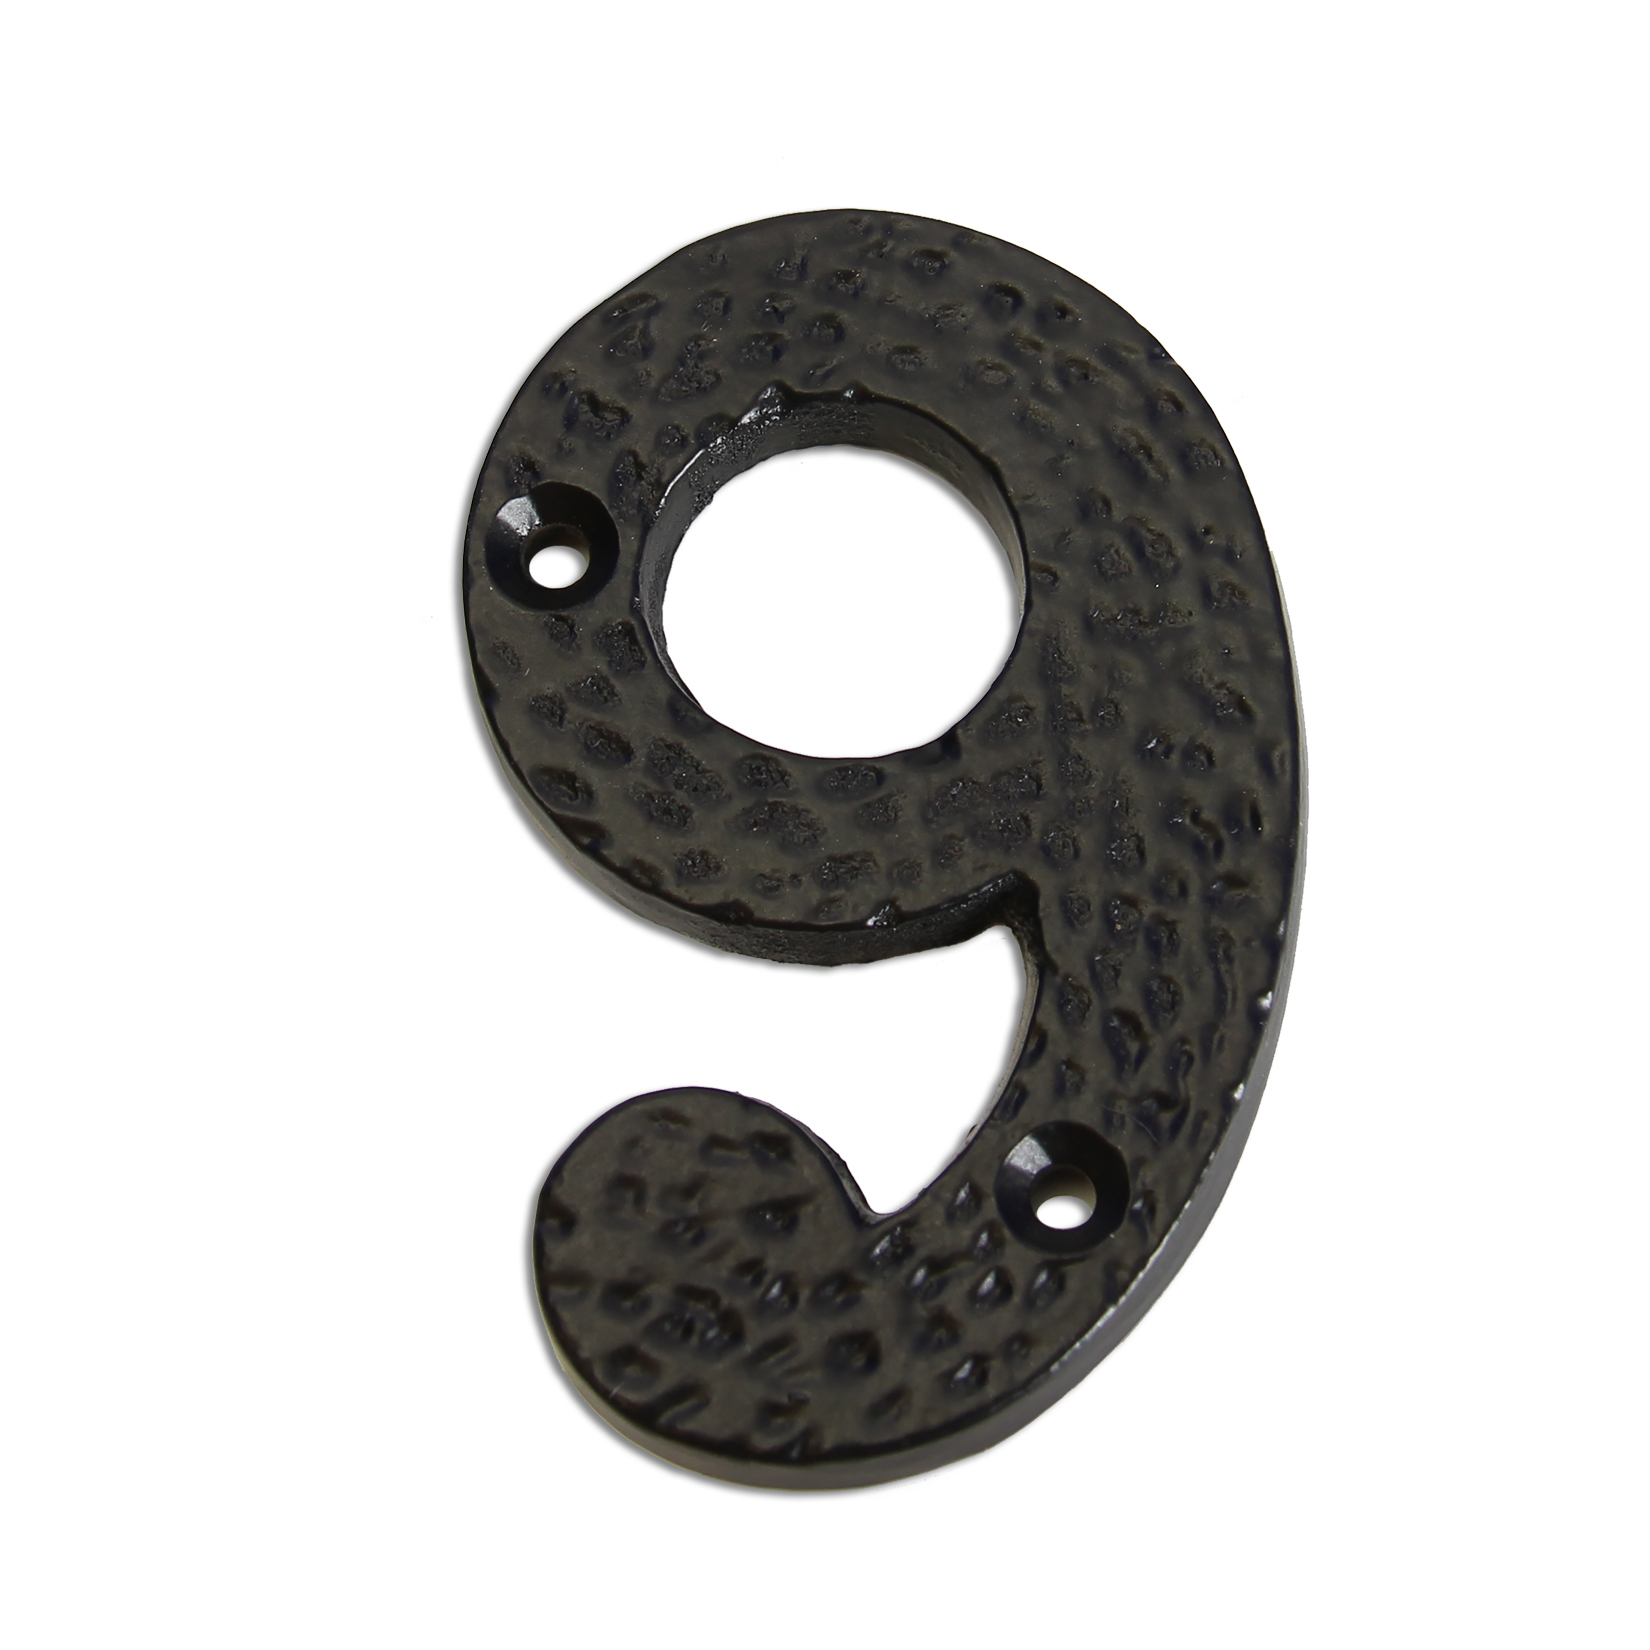 3-inch iron metal house number in iron black finish - metal number 9